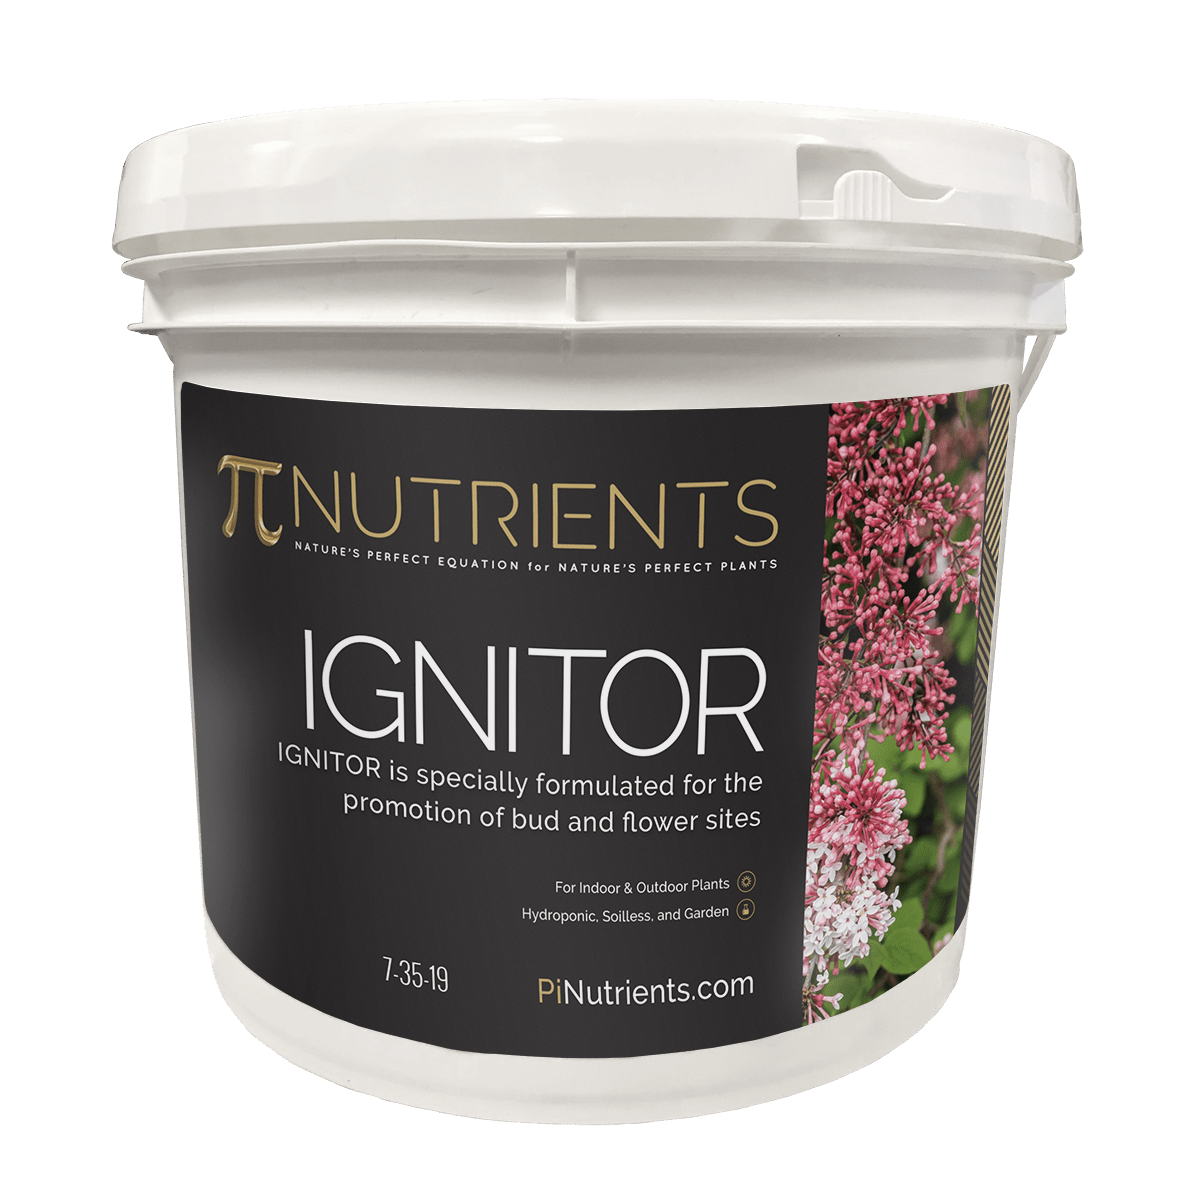 Pi Nutrients - Ignitor 7-35-19 - Fearless Gardener Brand Online